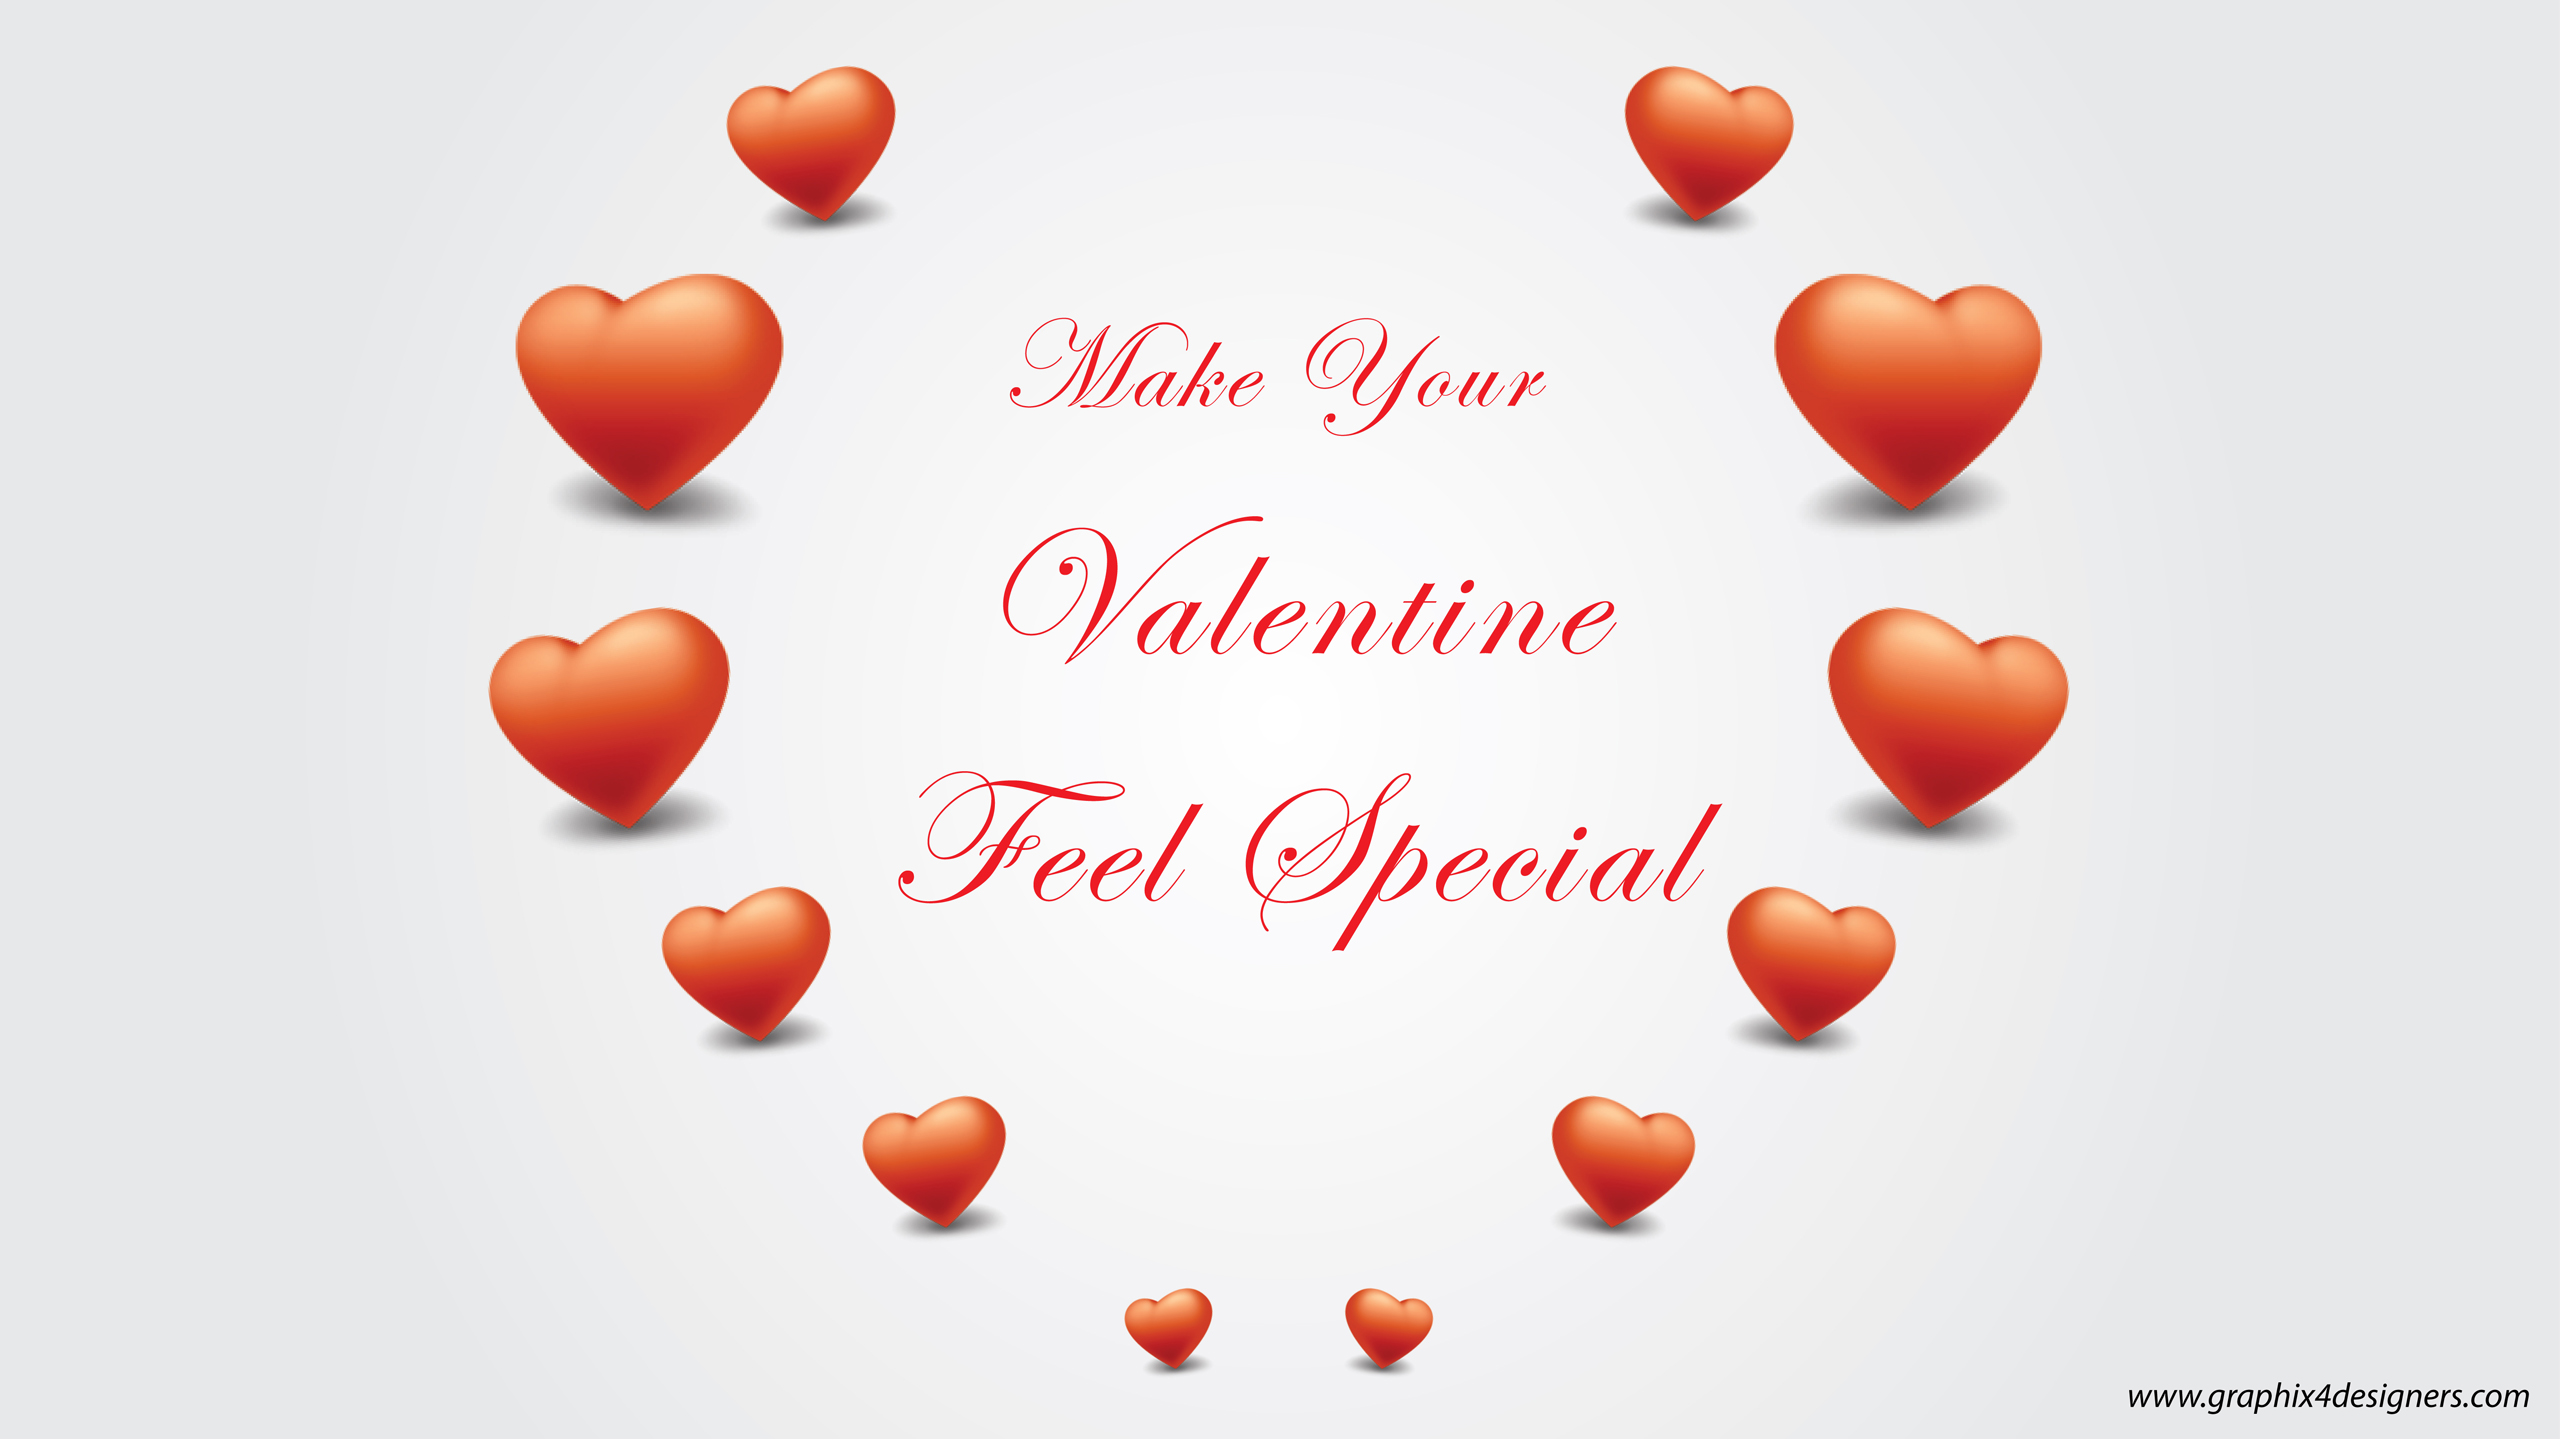 valentine special wallpapers | valentine special stock photos